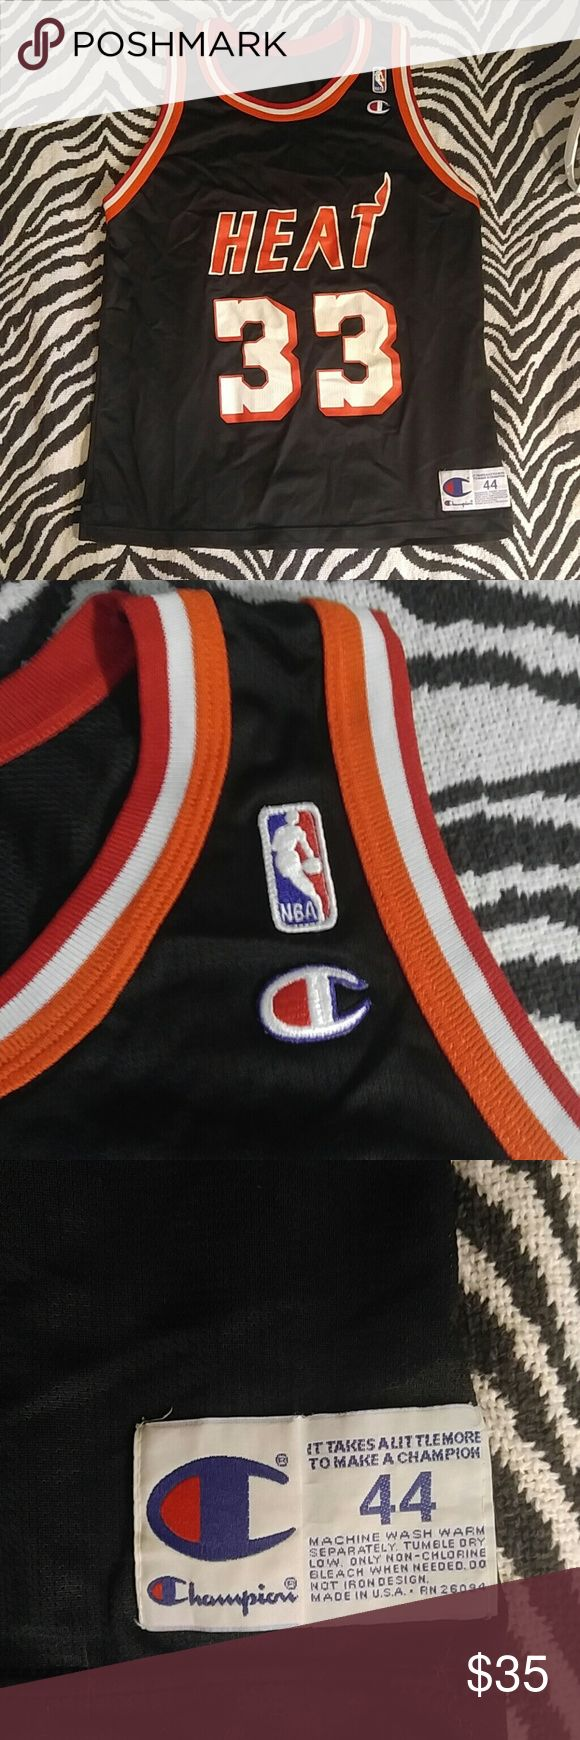 """Vintage Champion Alonzo Mourning Miami Heat jersey Amazing vintage 'Zo jersey made by Champion. Some light wear/cracking to logos as you can see in the pictures but overall in nice shape especially for an old school jersey. Size 40 which is generally considered a size L.  Length 28.5"""", Width 20"""" Champion Shirts"""